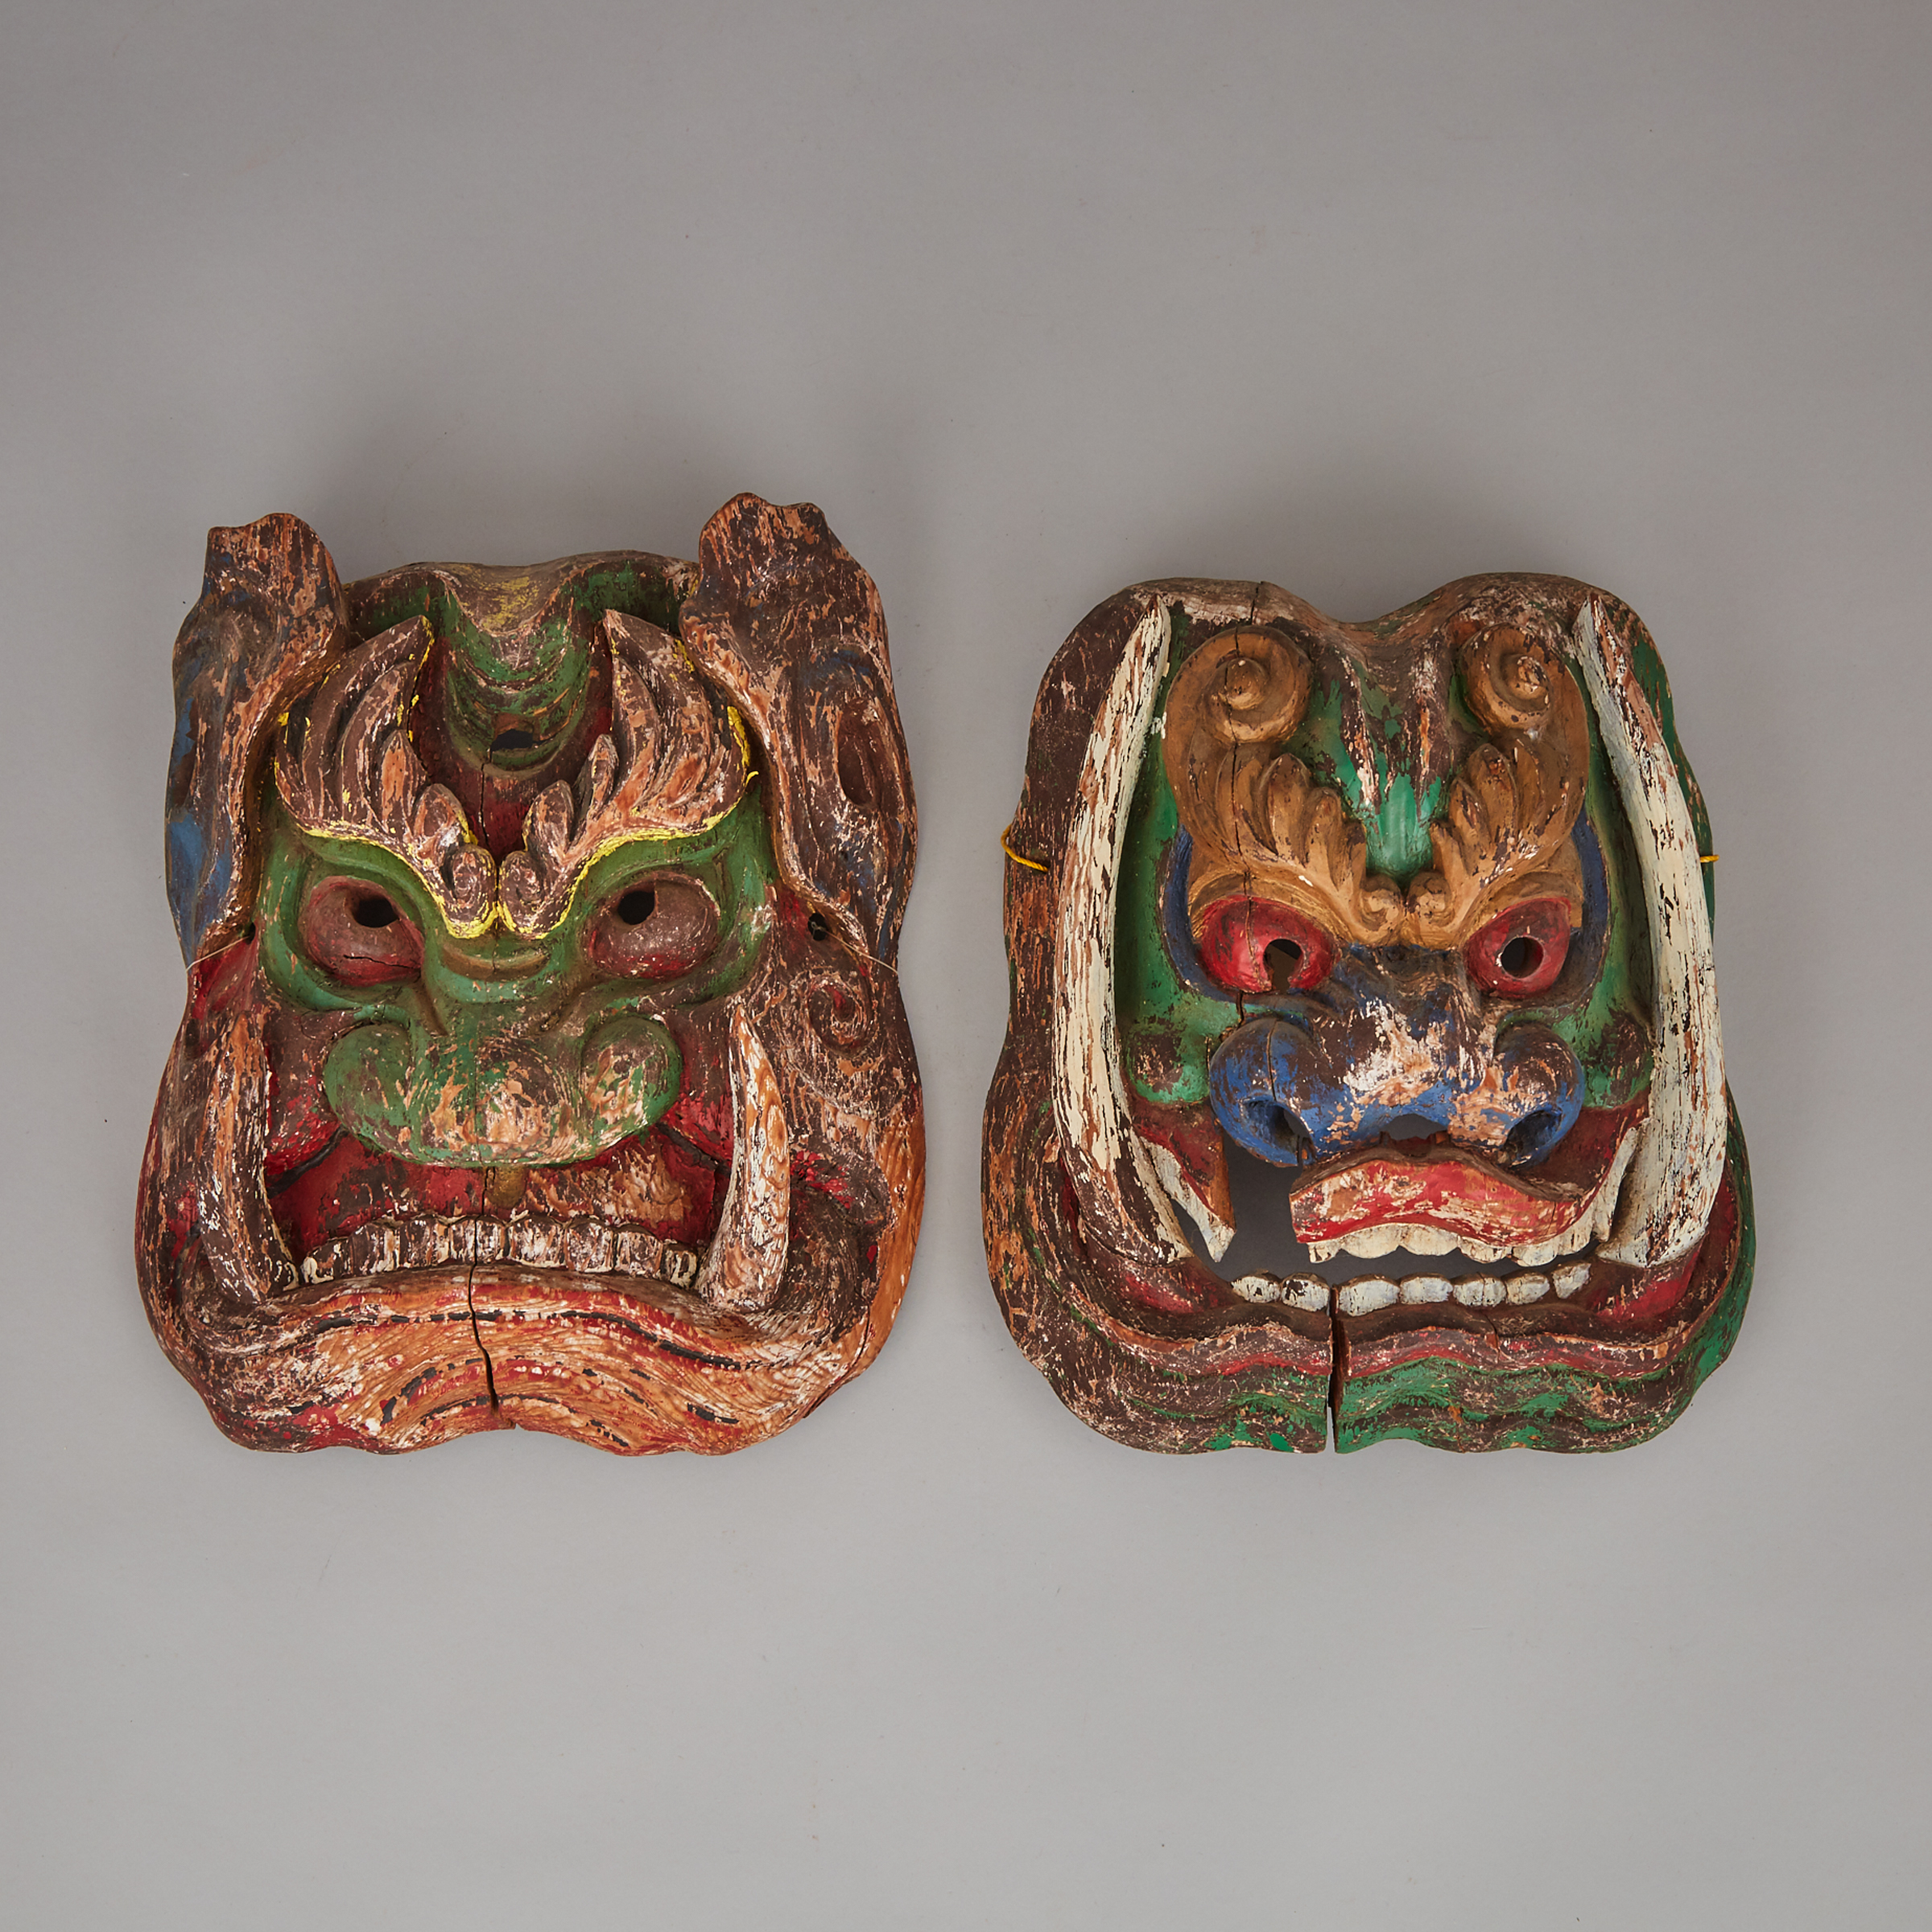 A Pair of Wood-Carved Masks of Wrathful Deities, Northern China